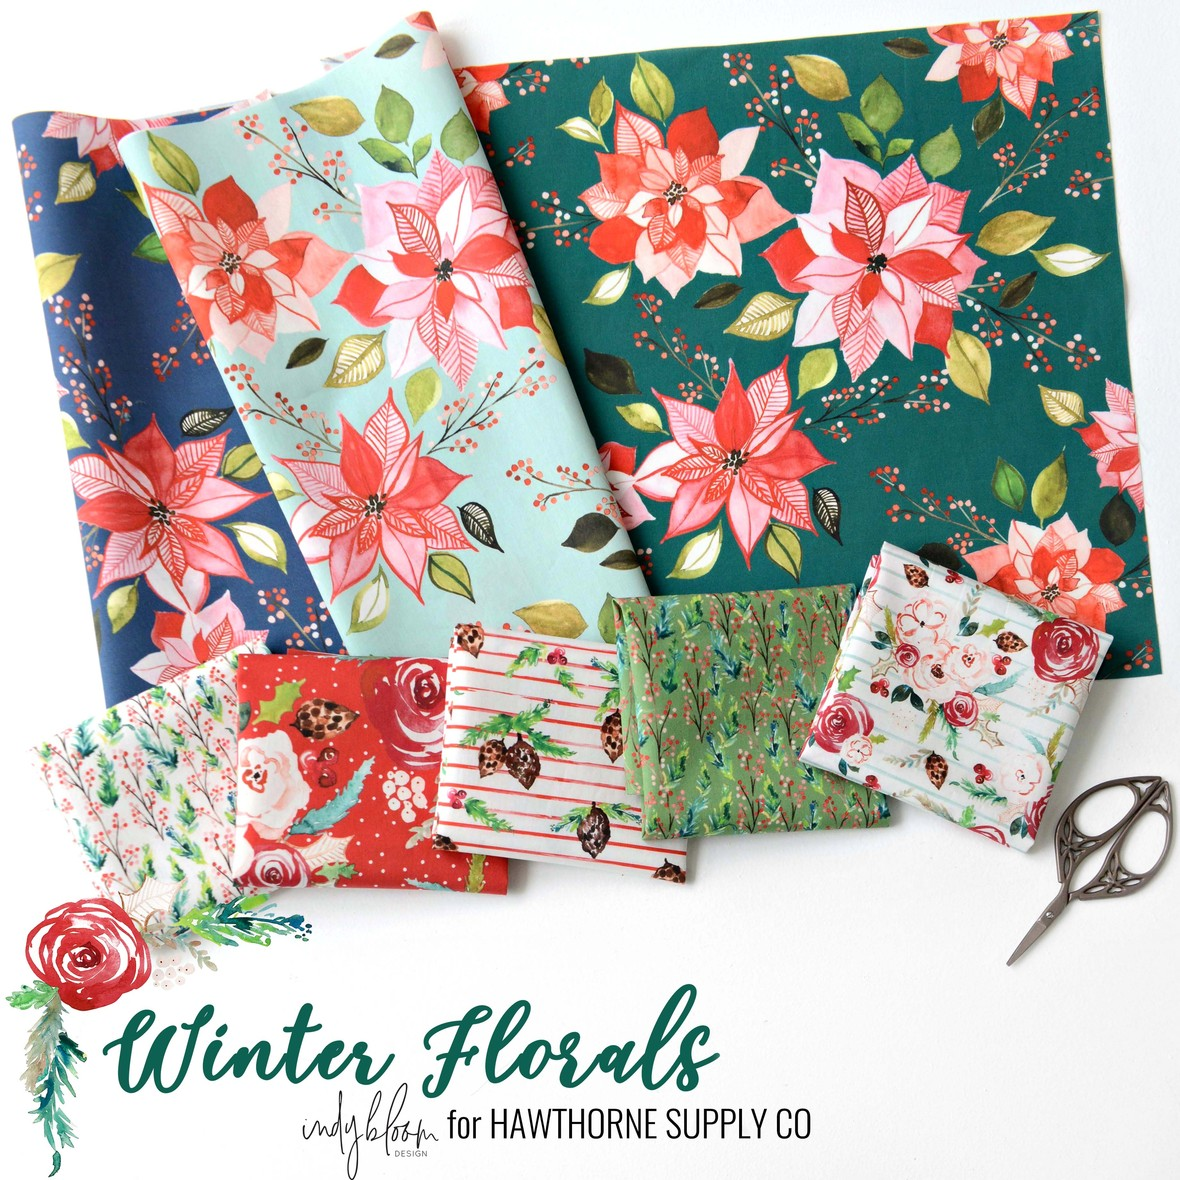 Indy Bloom Christmas Winter Florals Fabric at Hawthorne Supply Co